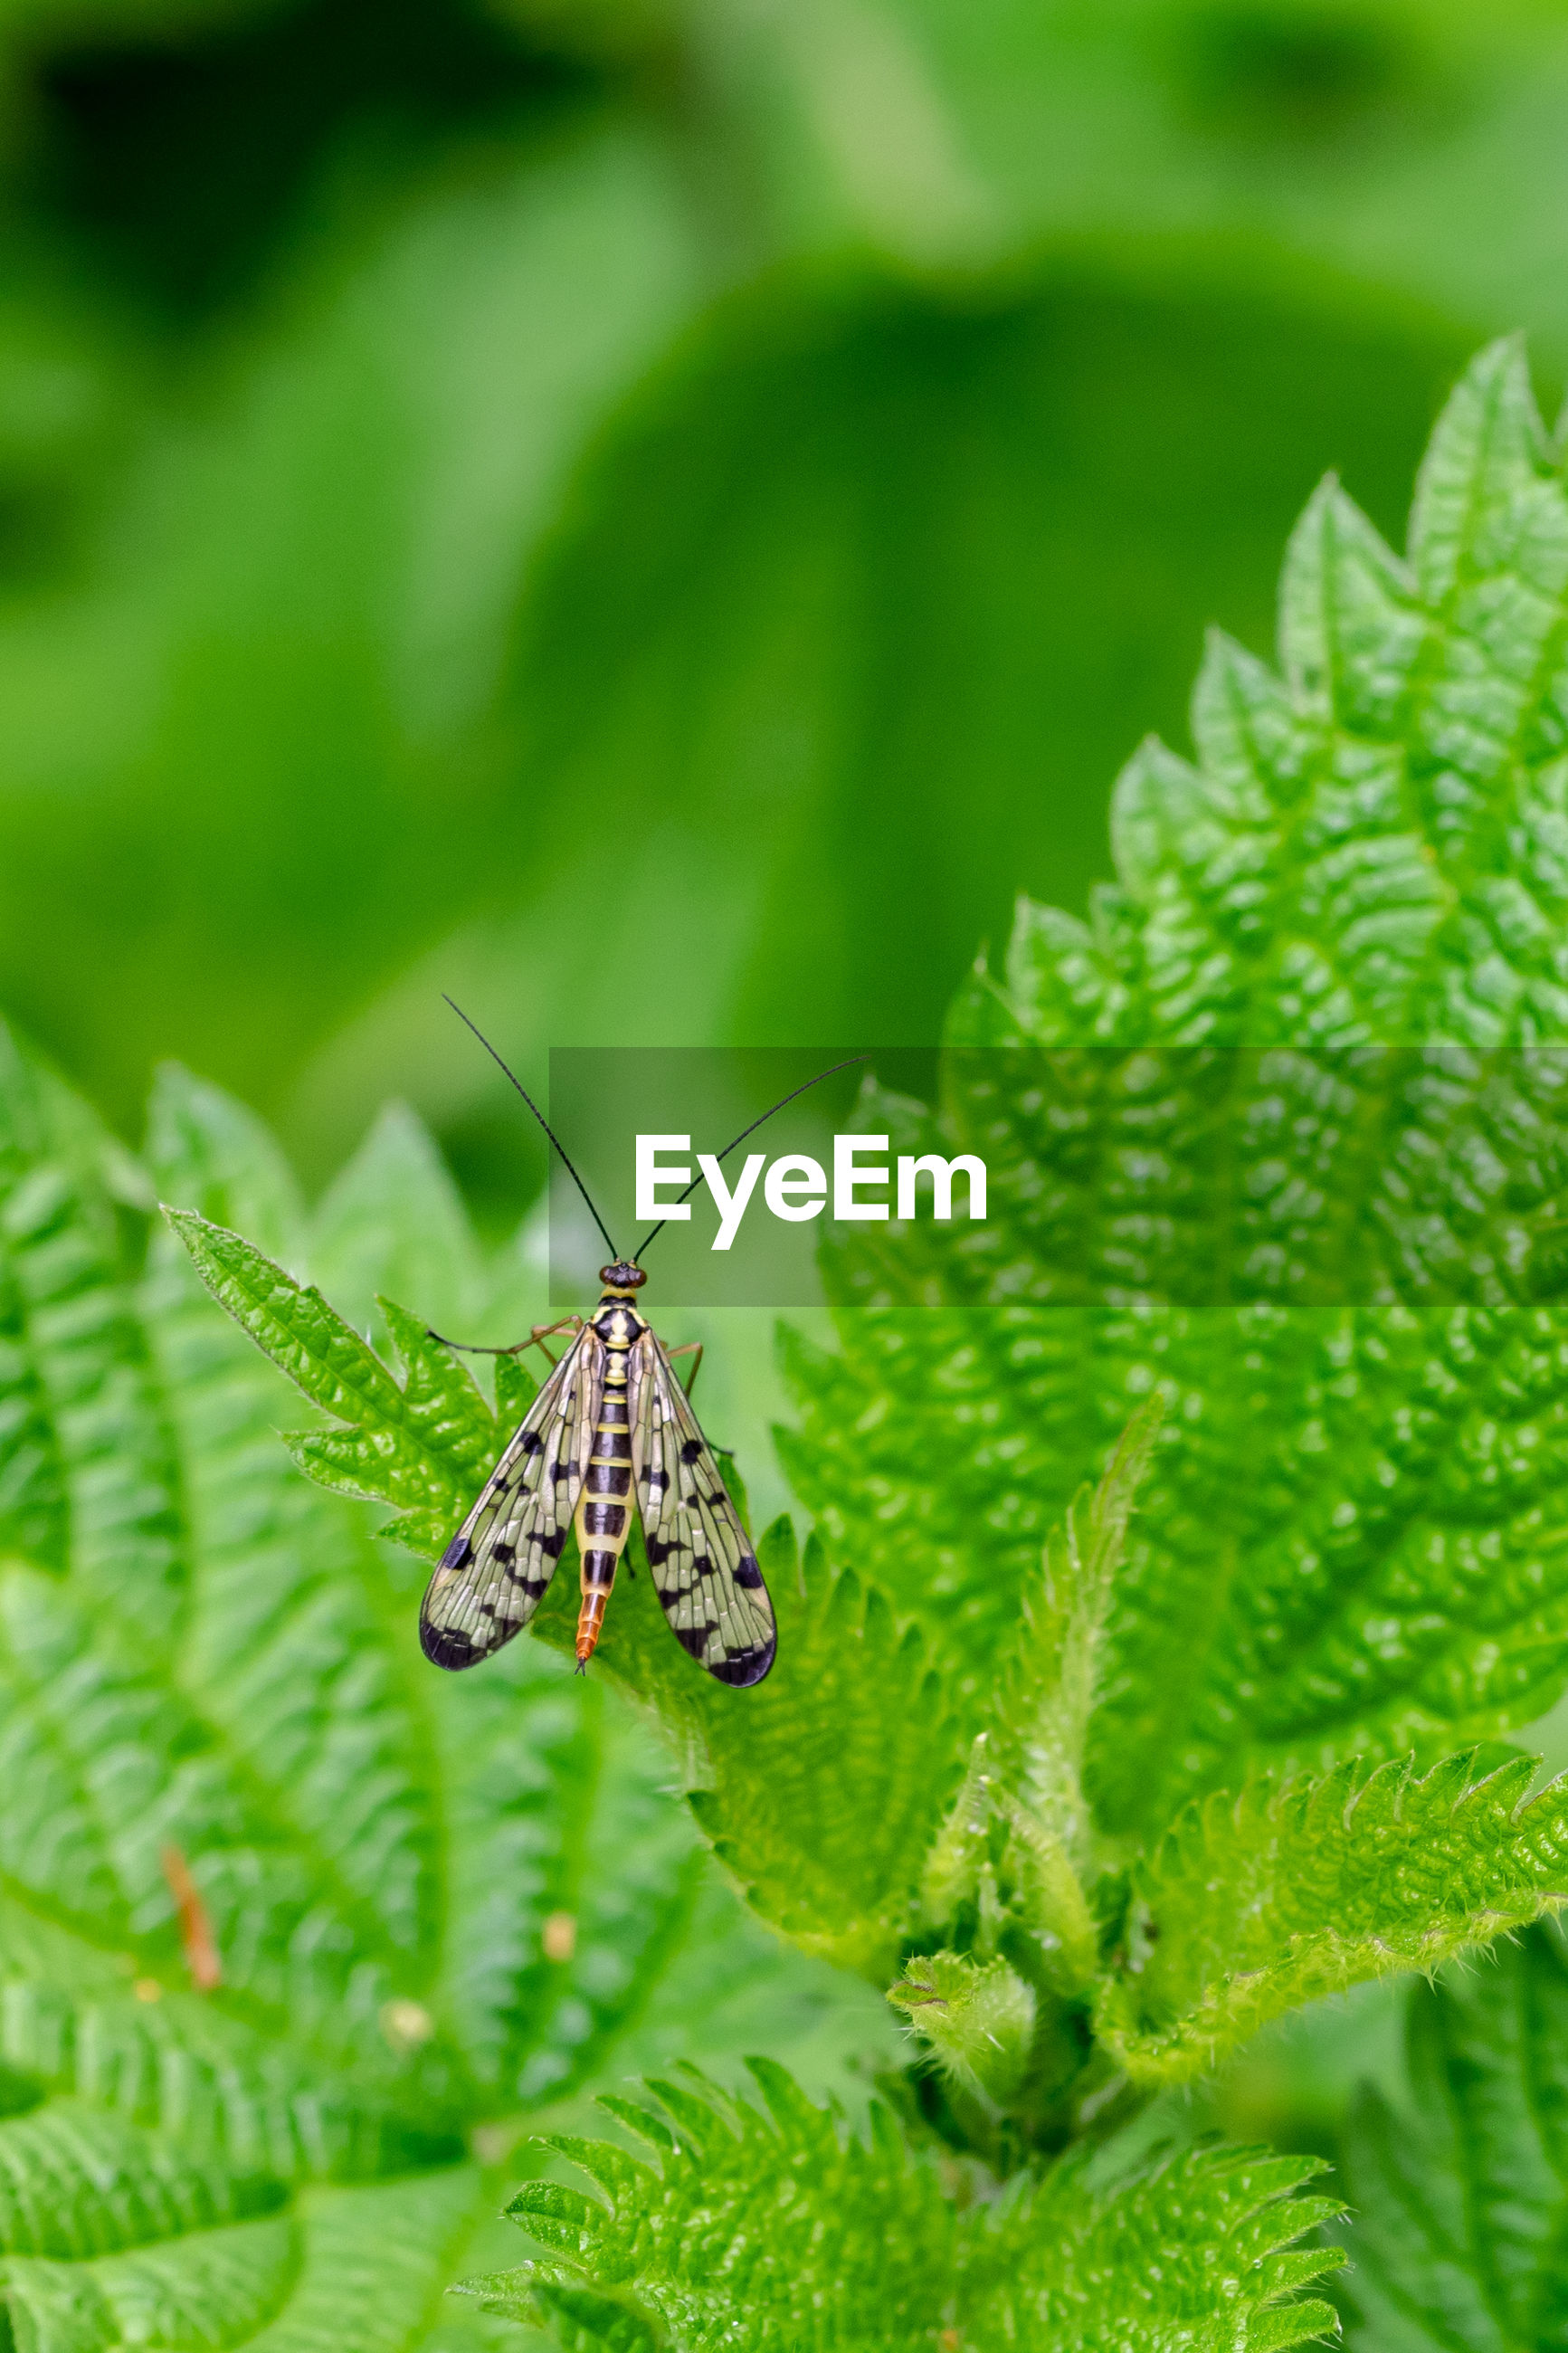 Common scorpion fly, panorpa communis, resting on a stinging nettle leaf